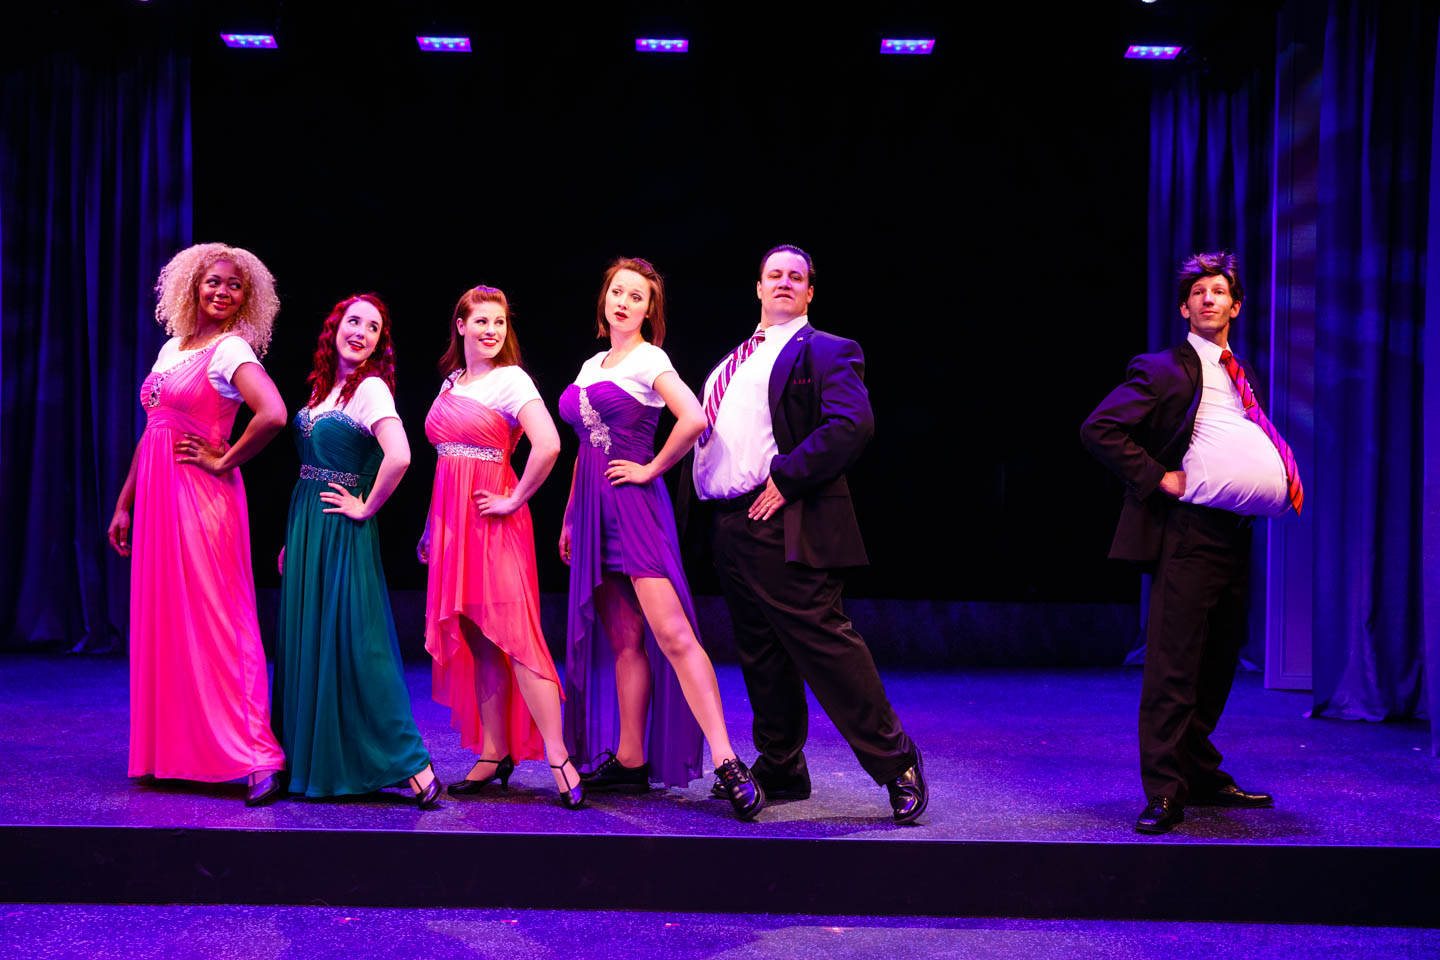 Musical number for the modesty beauty pagent